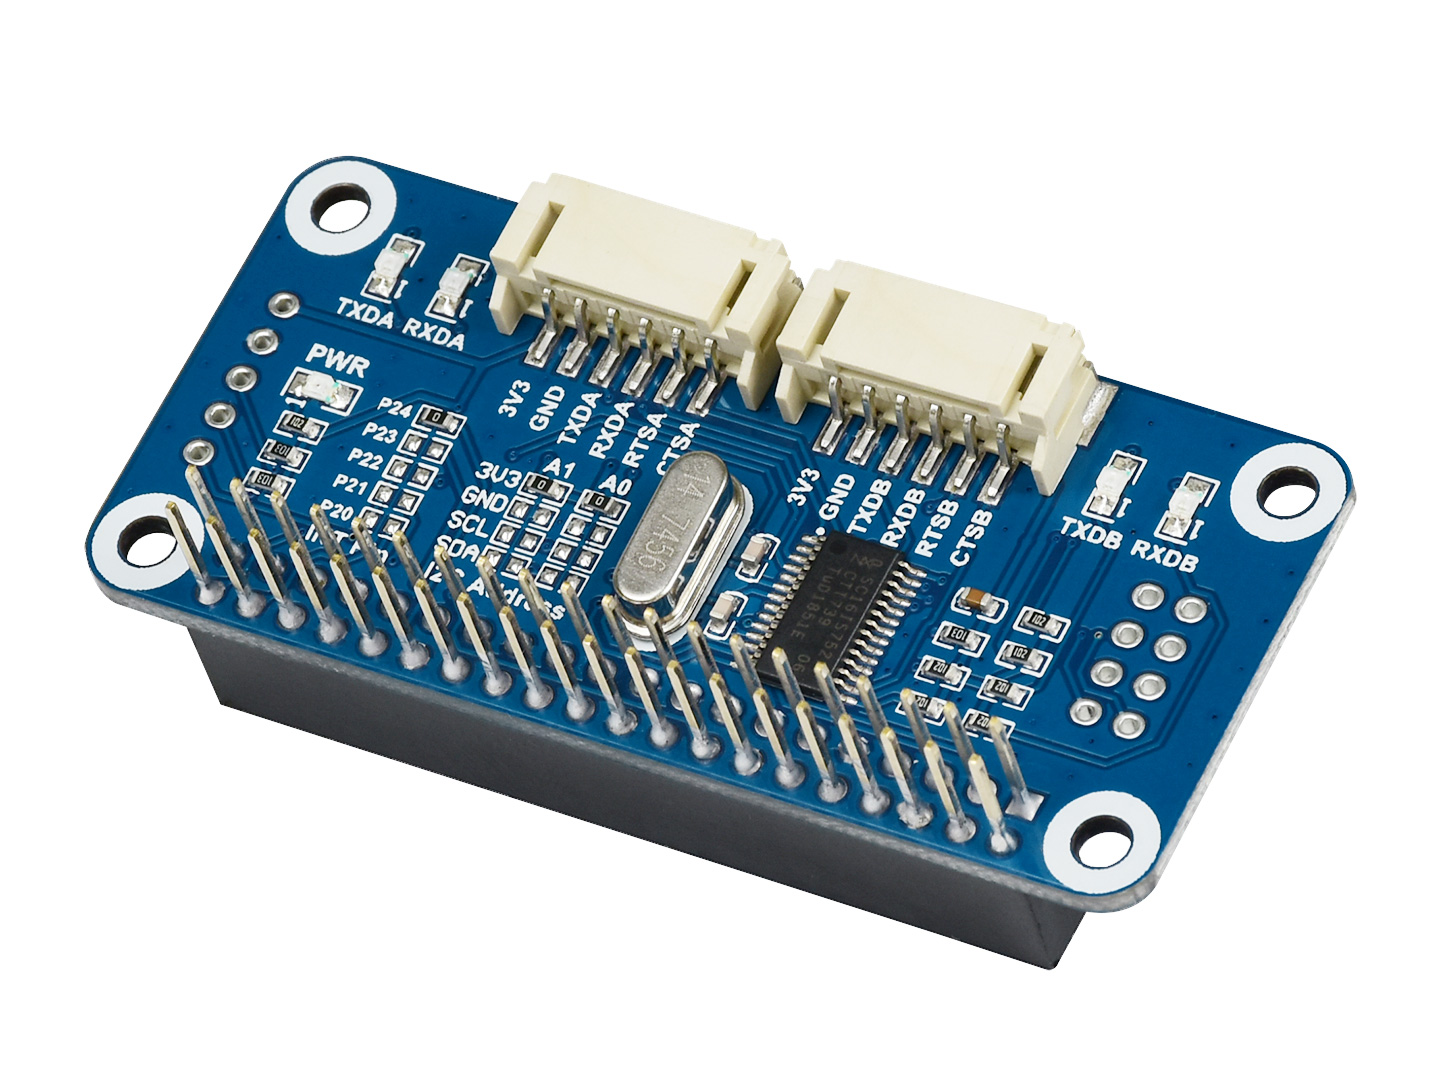 Serial Expansion HAT For Raspberry Pi, I2C Interface, Provides 2-ch UART And 8 GPIOs